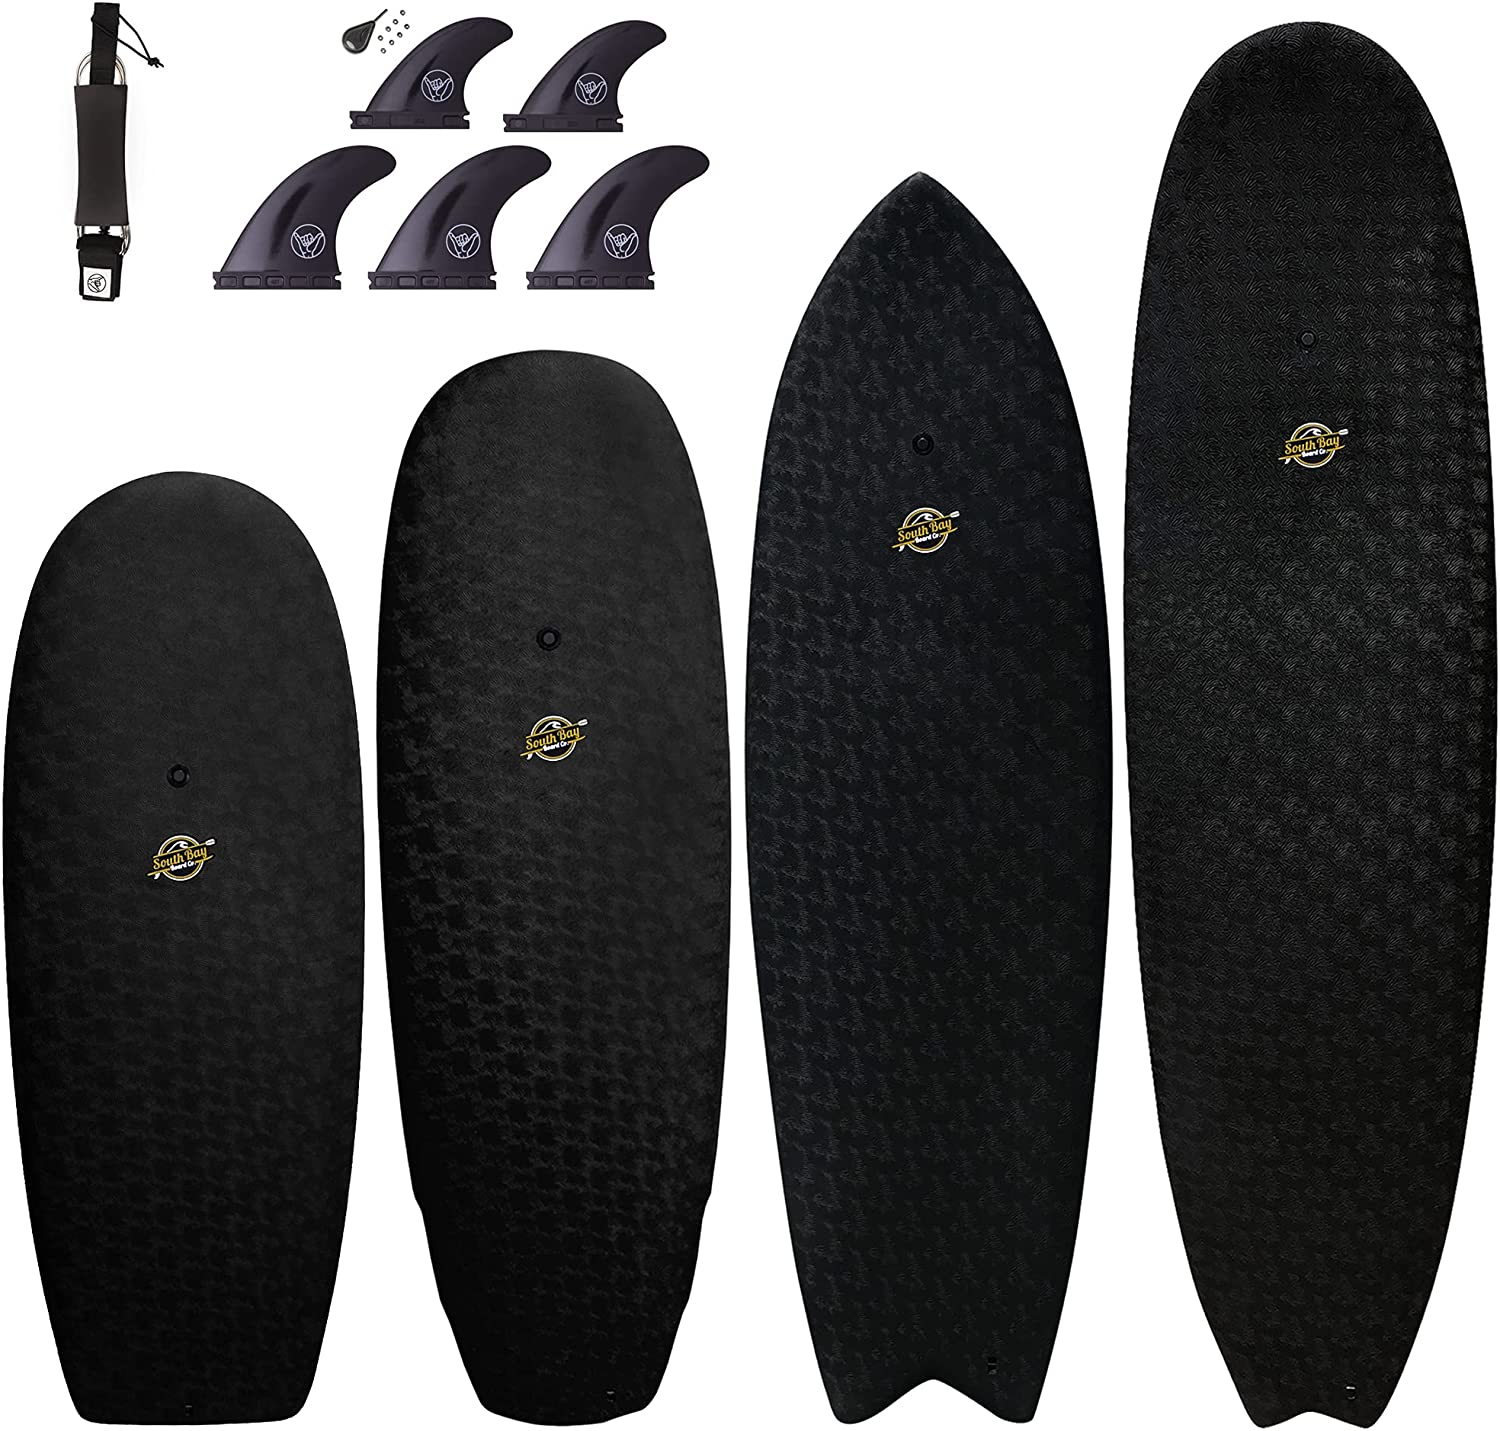 South Bay Board Co. Max 68% OFF - 4'10 Hybrid 6'8 5'5 Wax- Some reservation 6' Surfboards